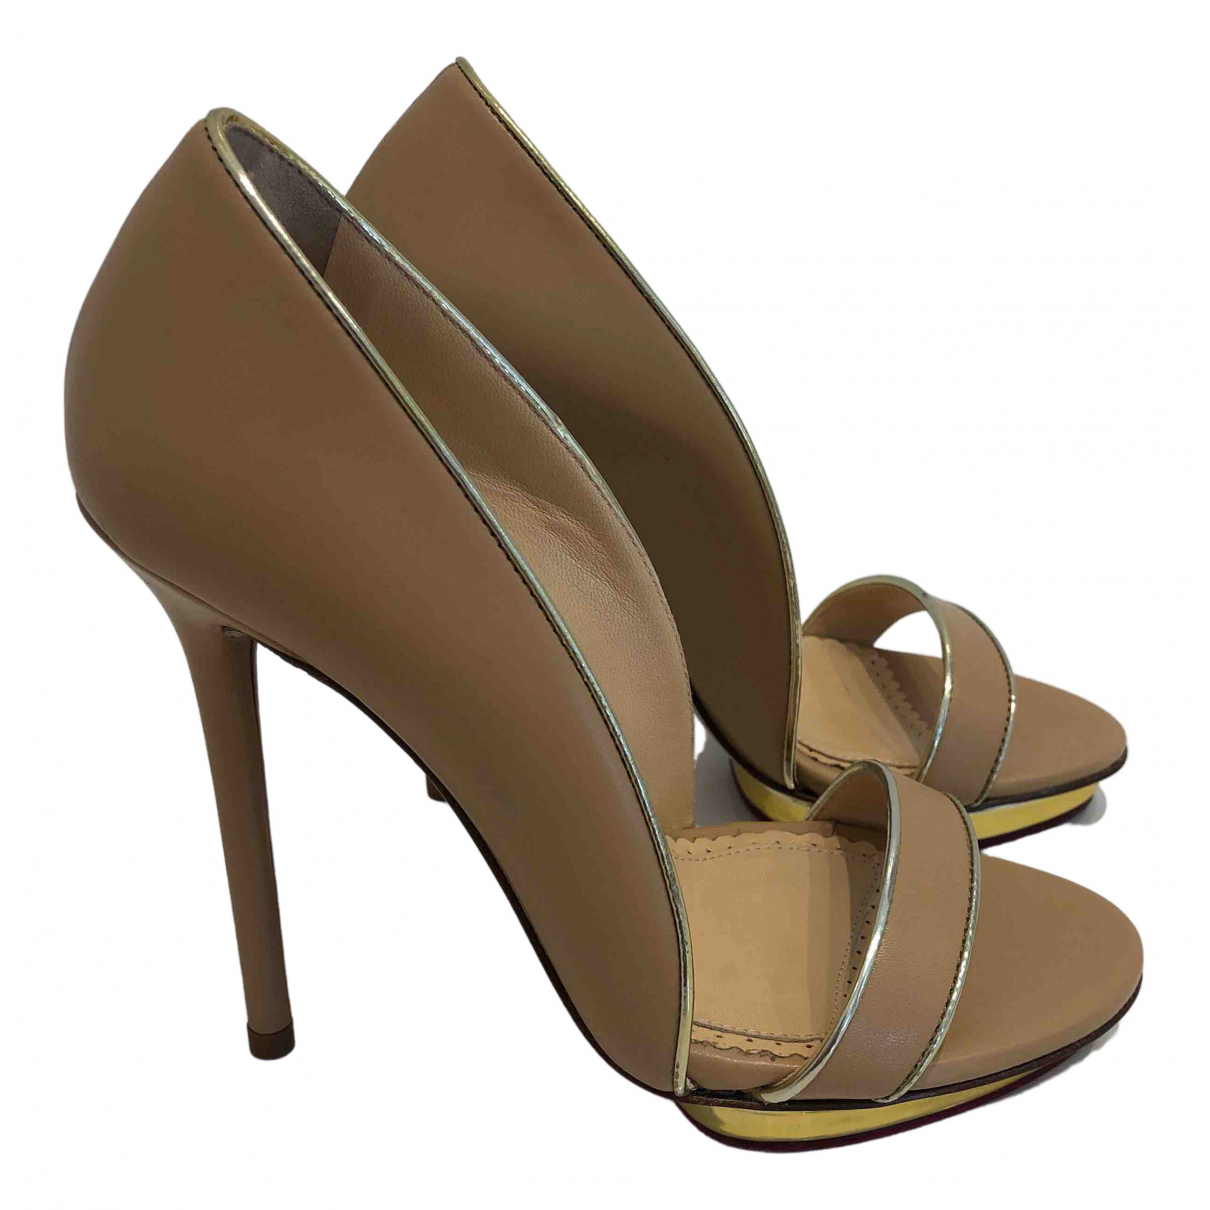 Charlotte Olympia \N Beige Leather Sandals for Women 34.5 EU